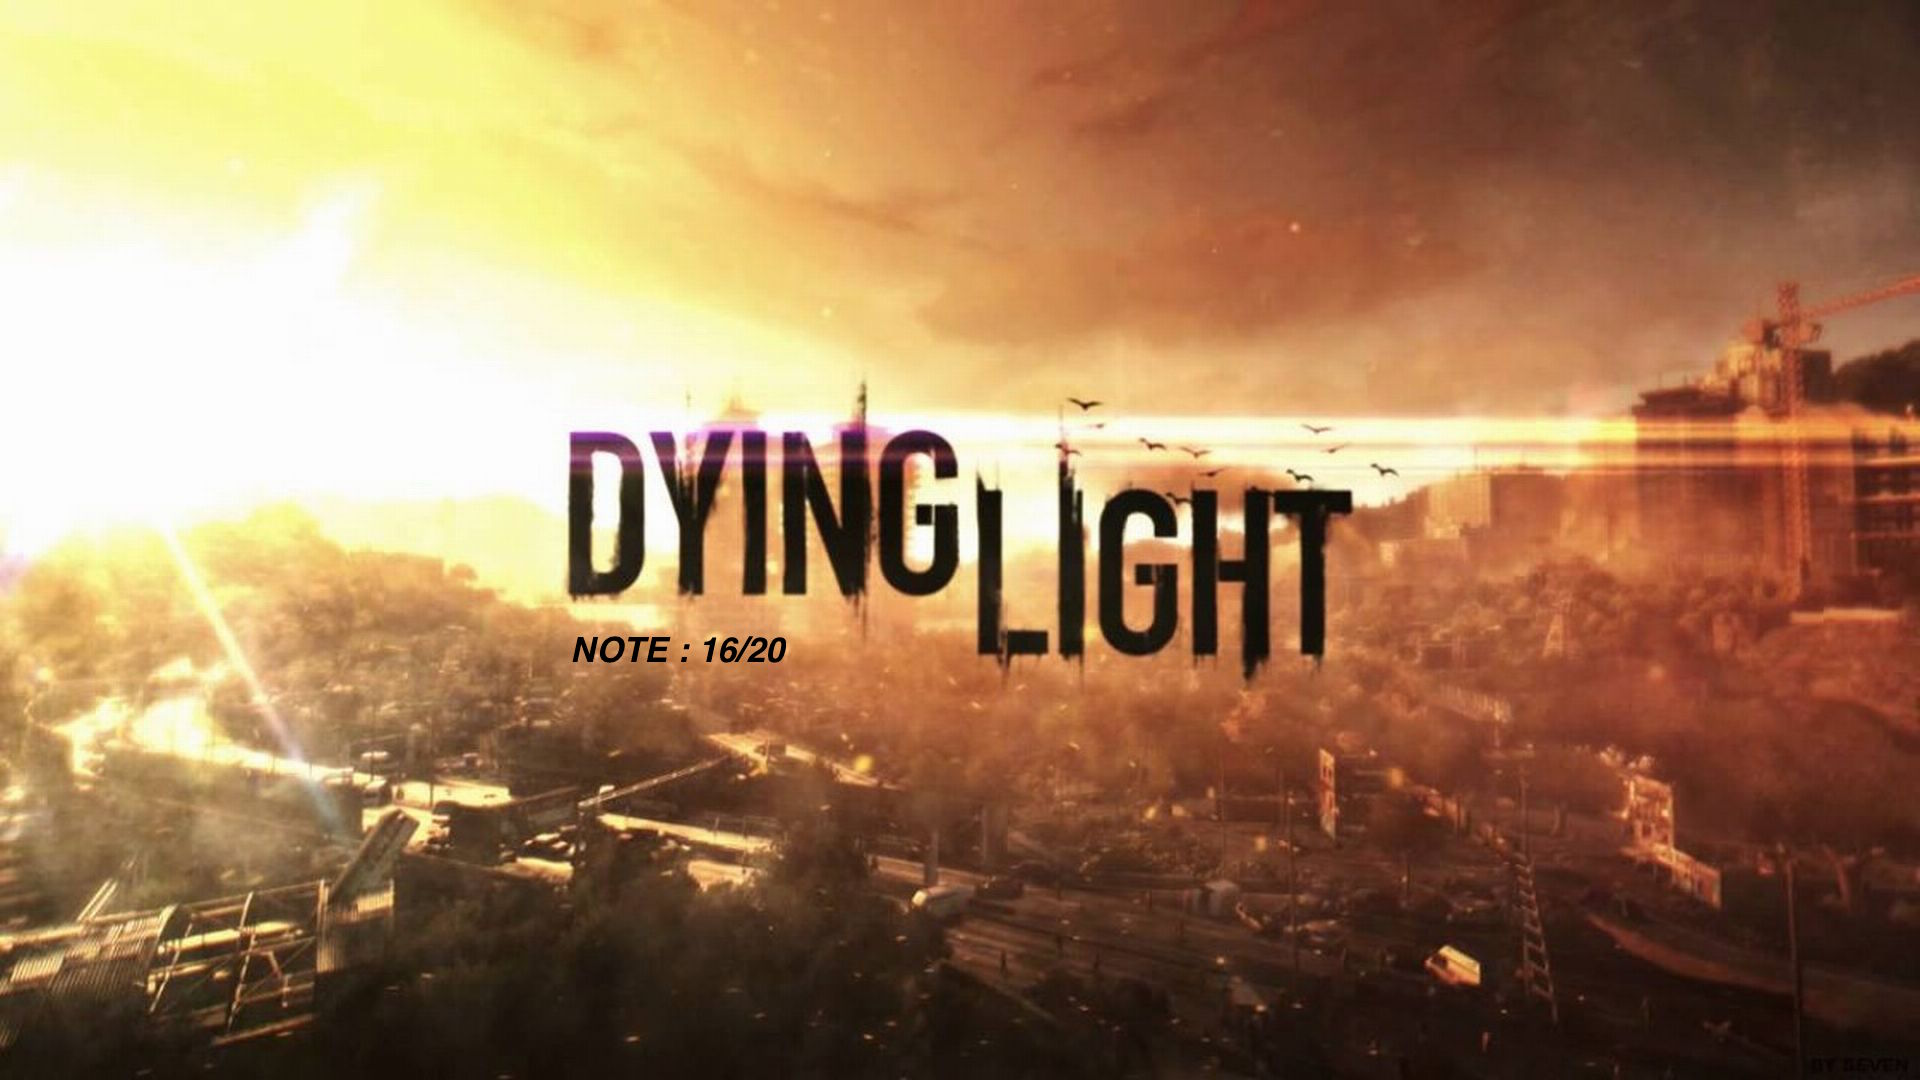 Dying-light-note